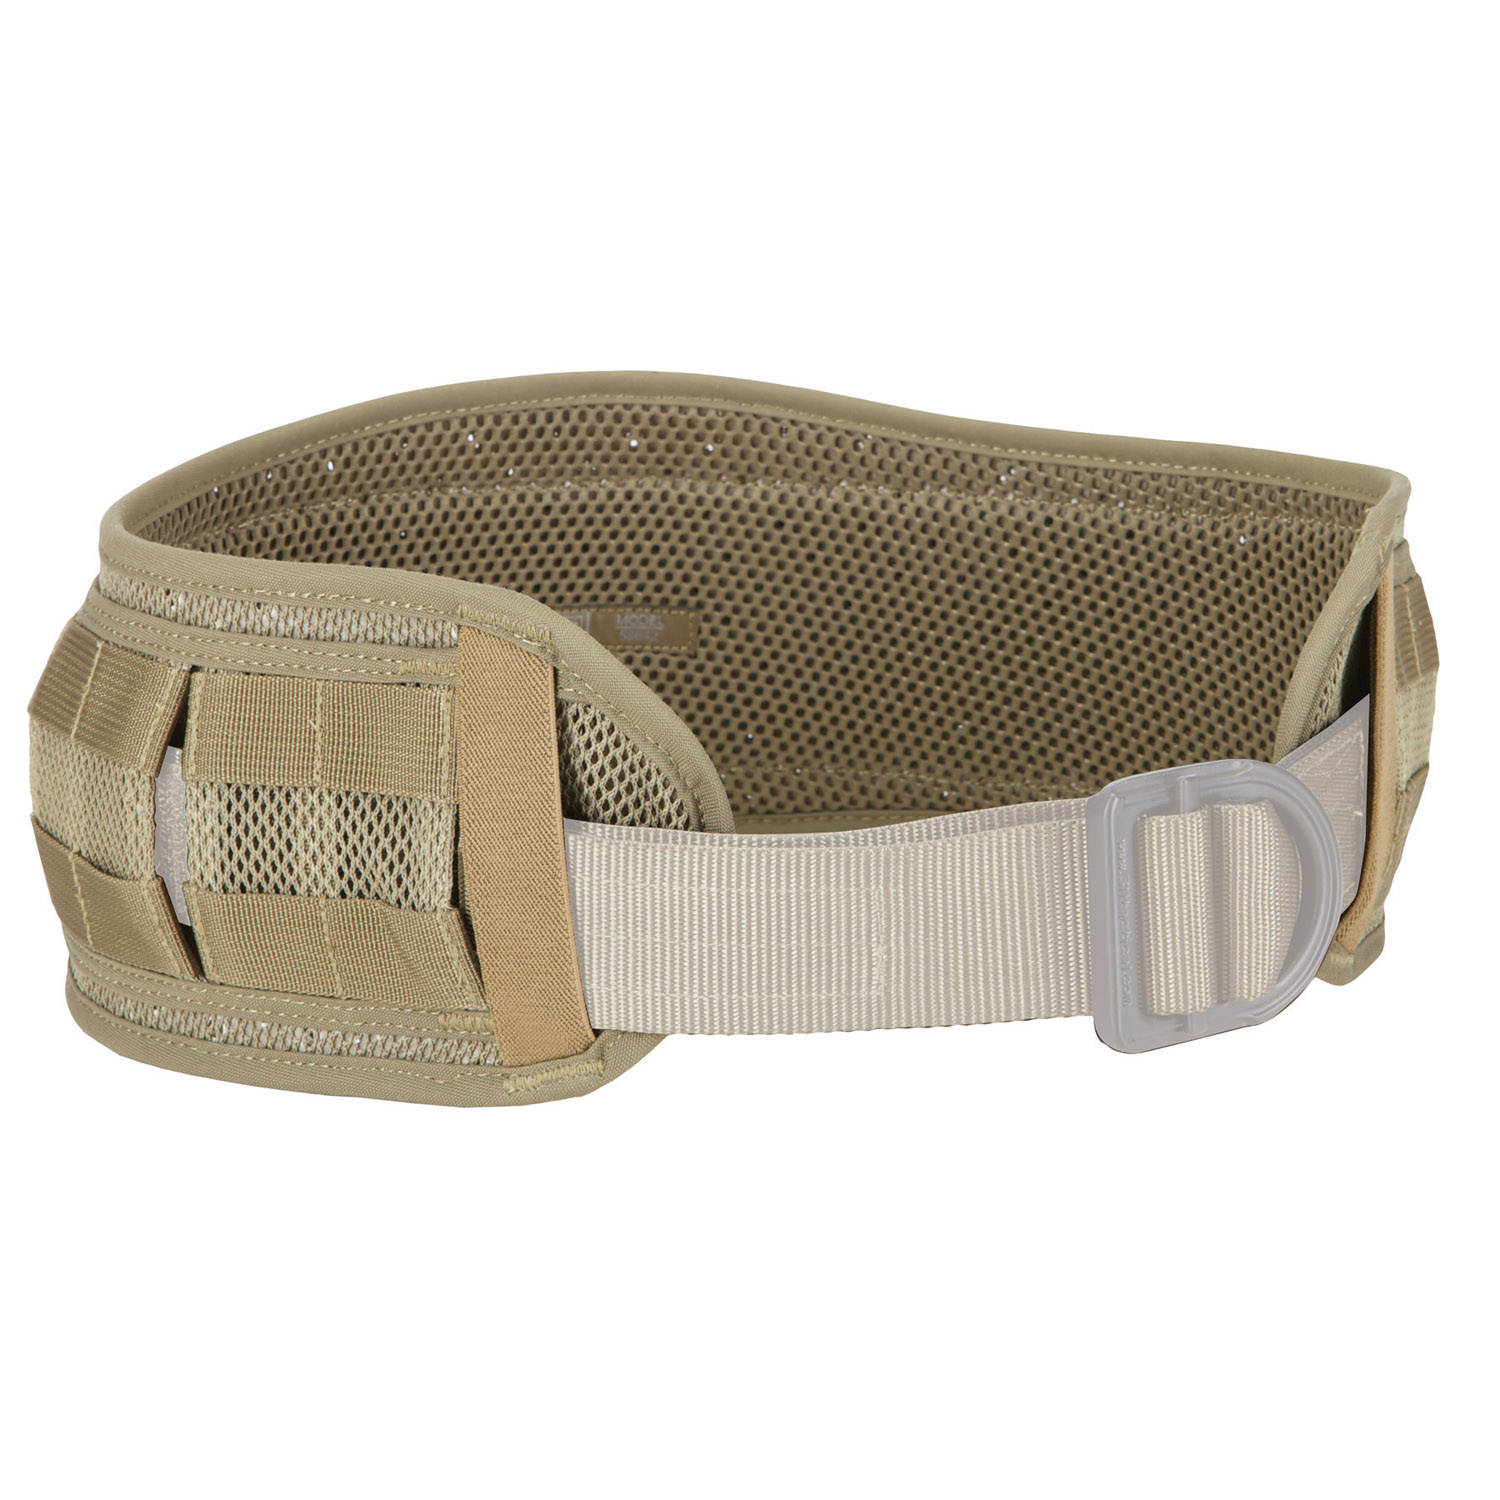 5.11 Tactical Brokos VTAC Belt